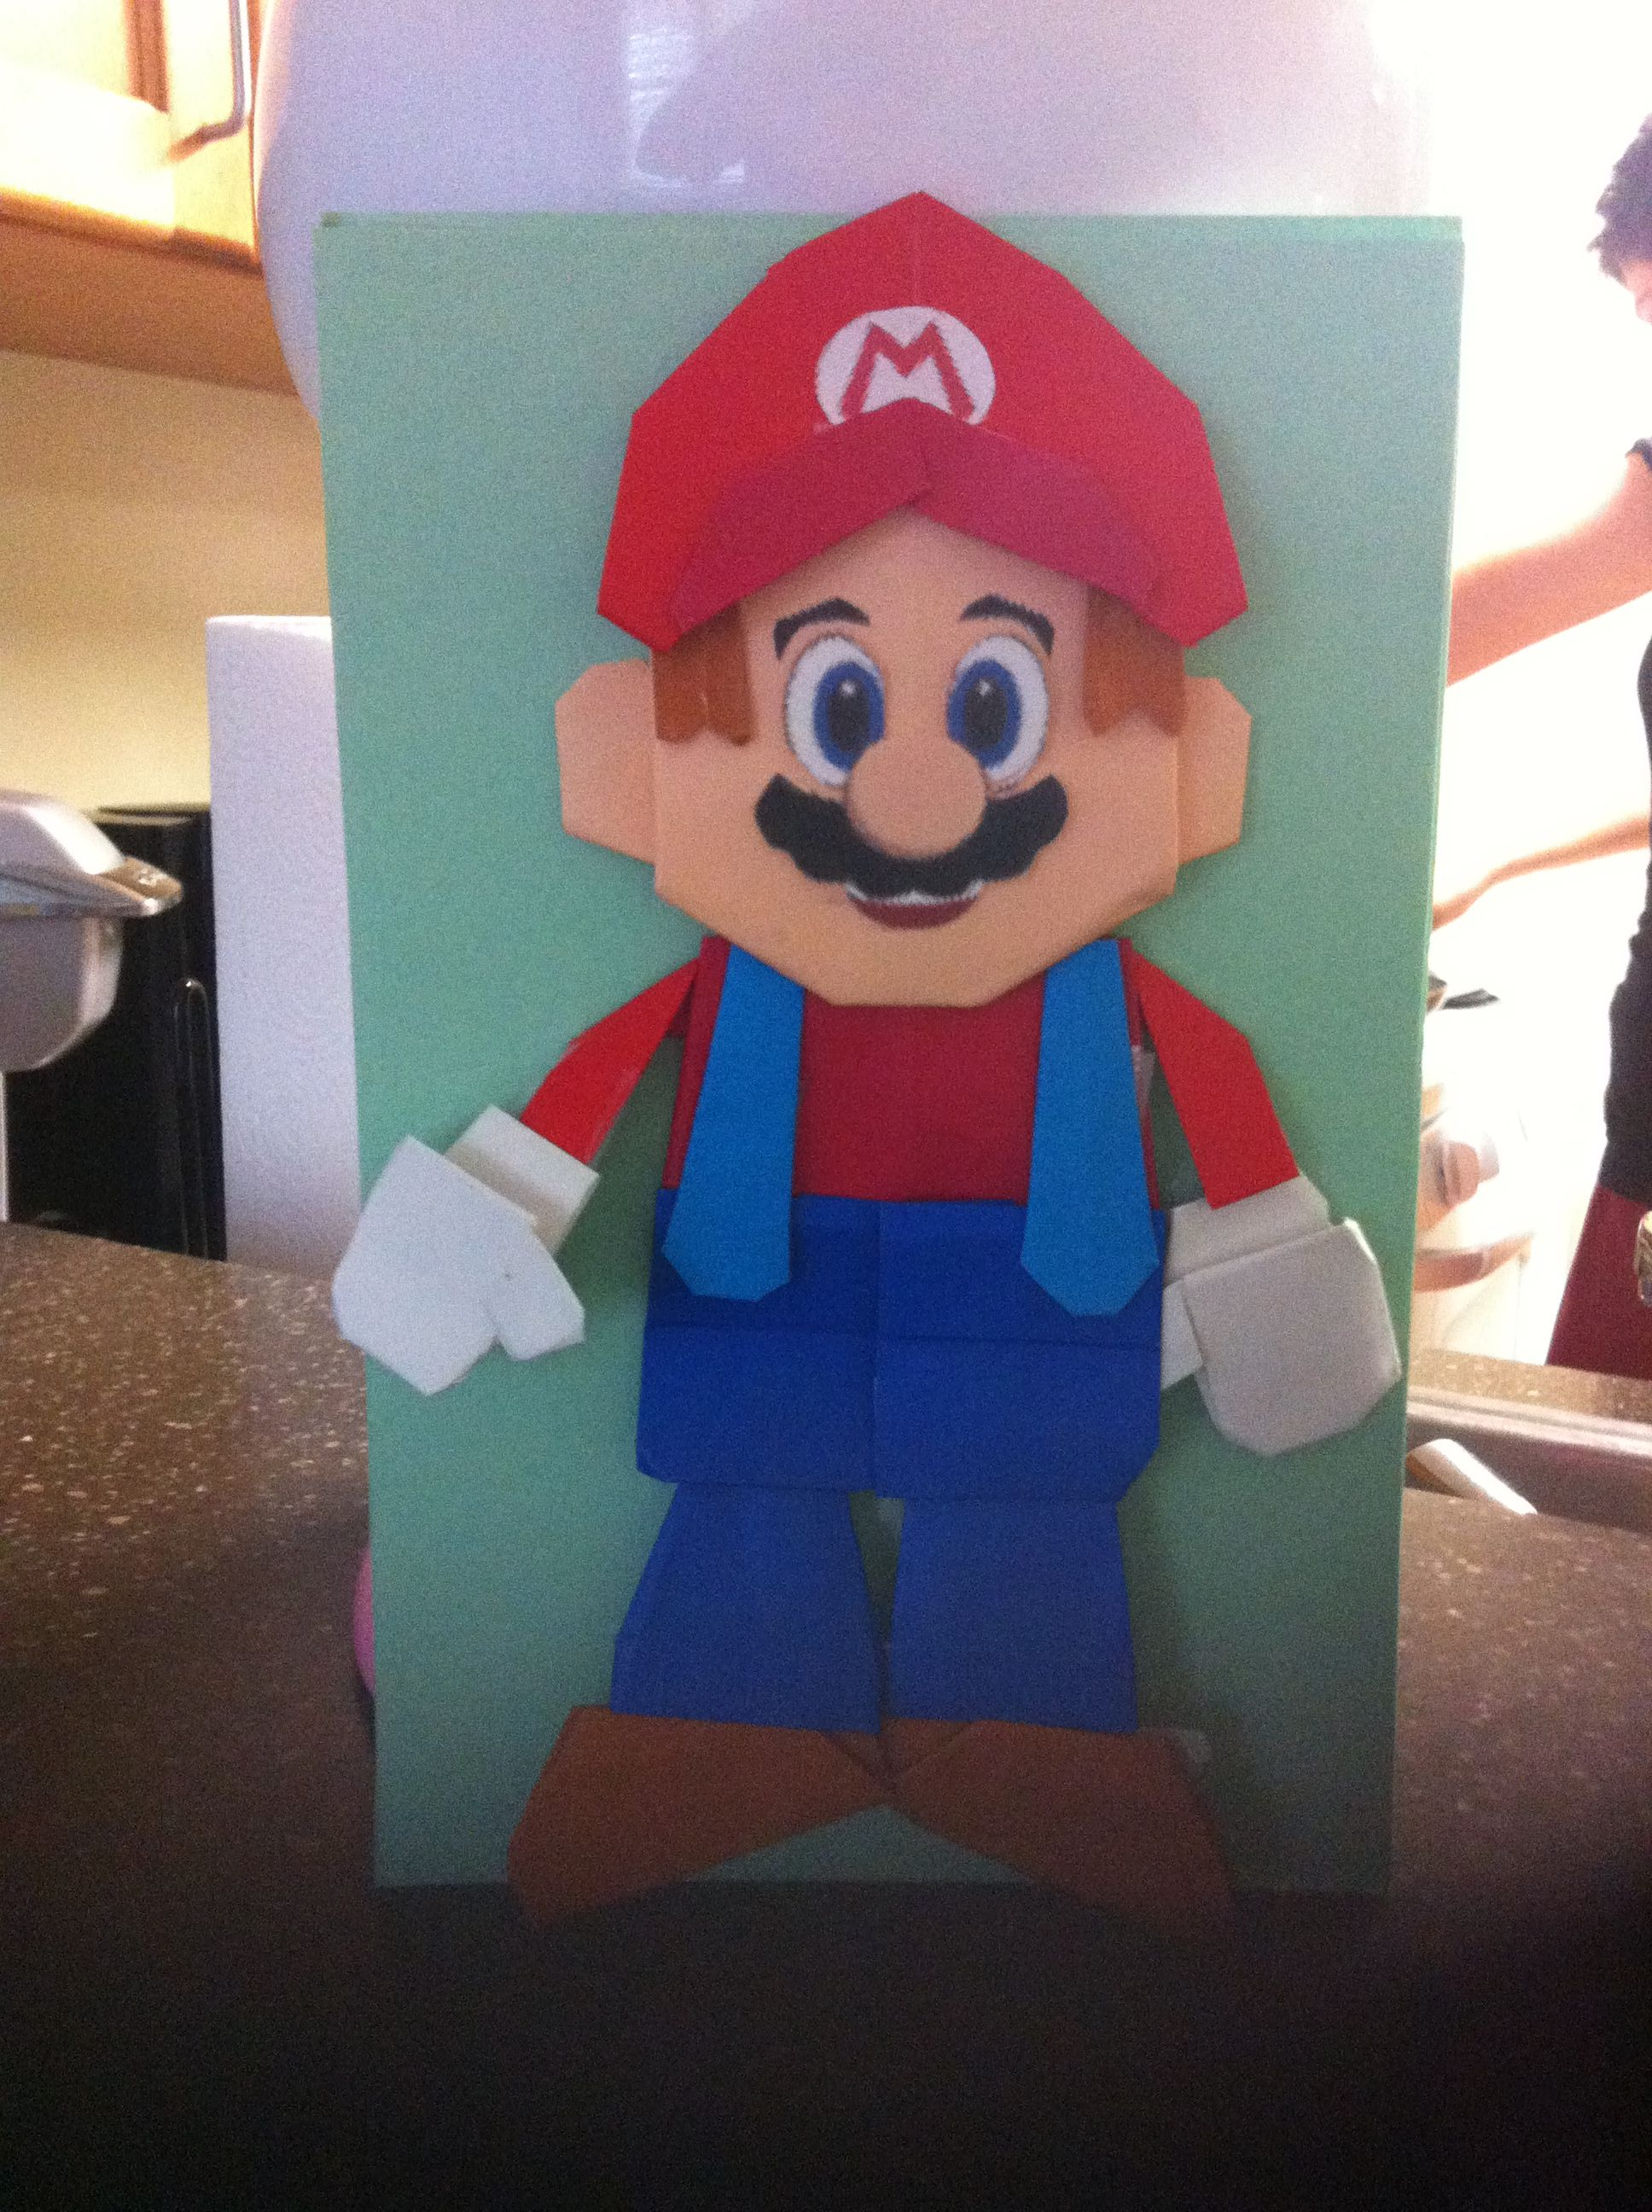 Origami Mario My Creations Pinterest Origami Mario And May